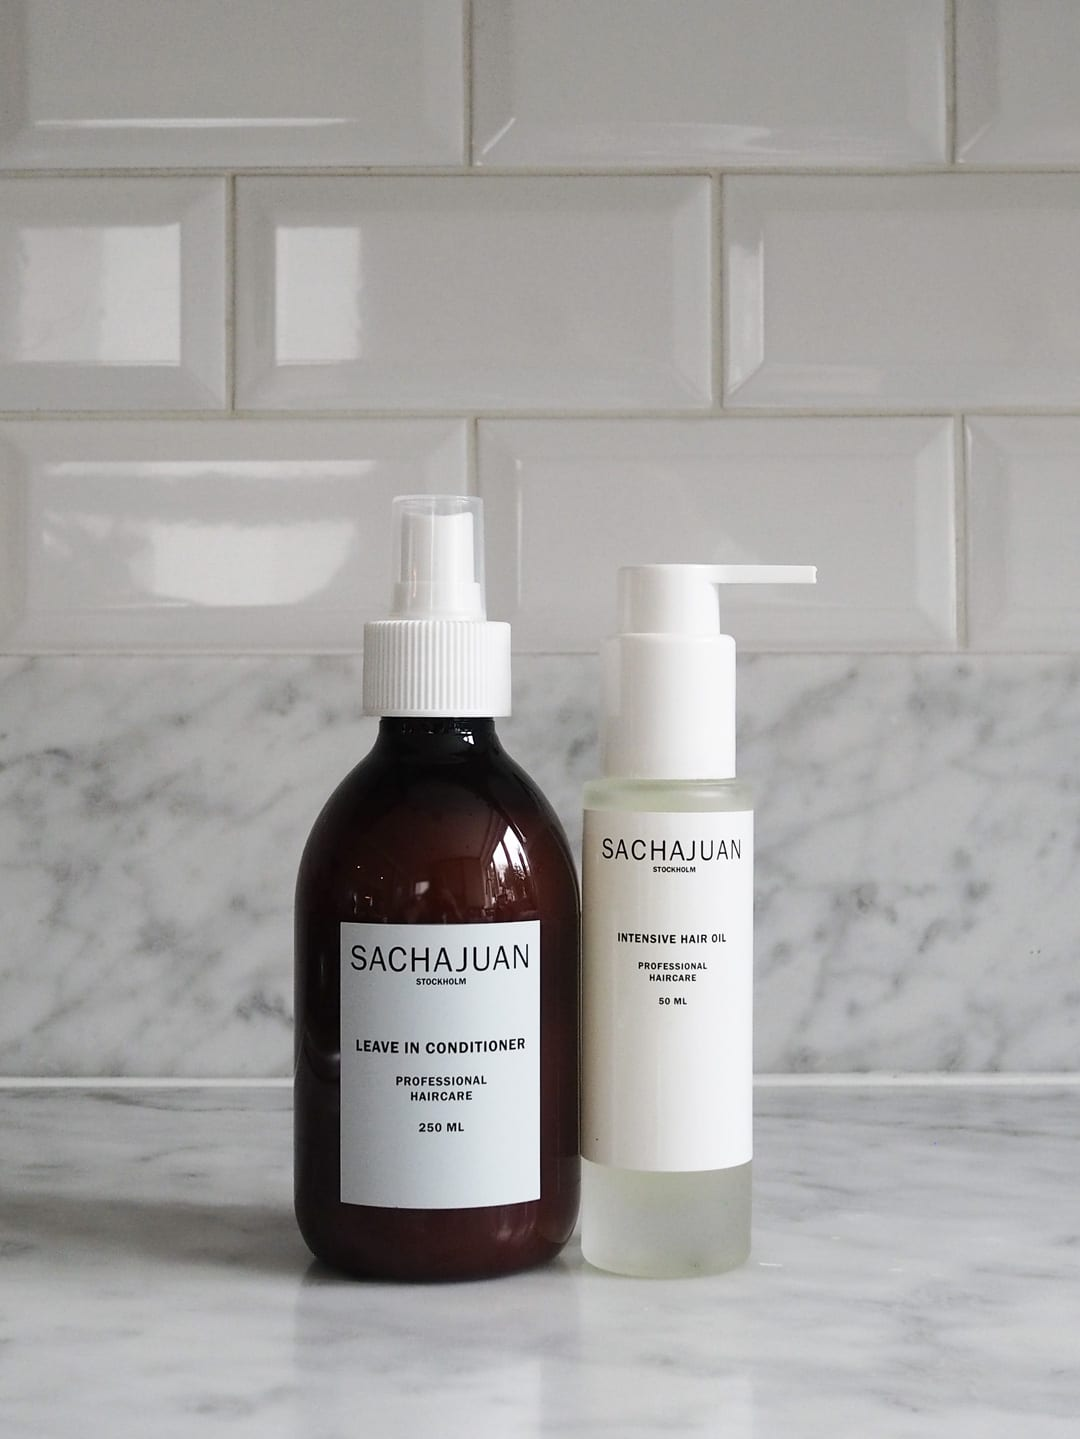 Sachajuan haircare for dry hair